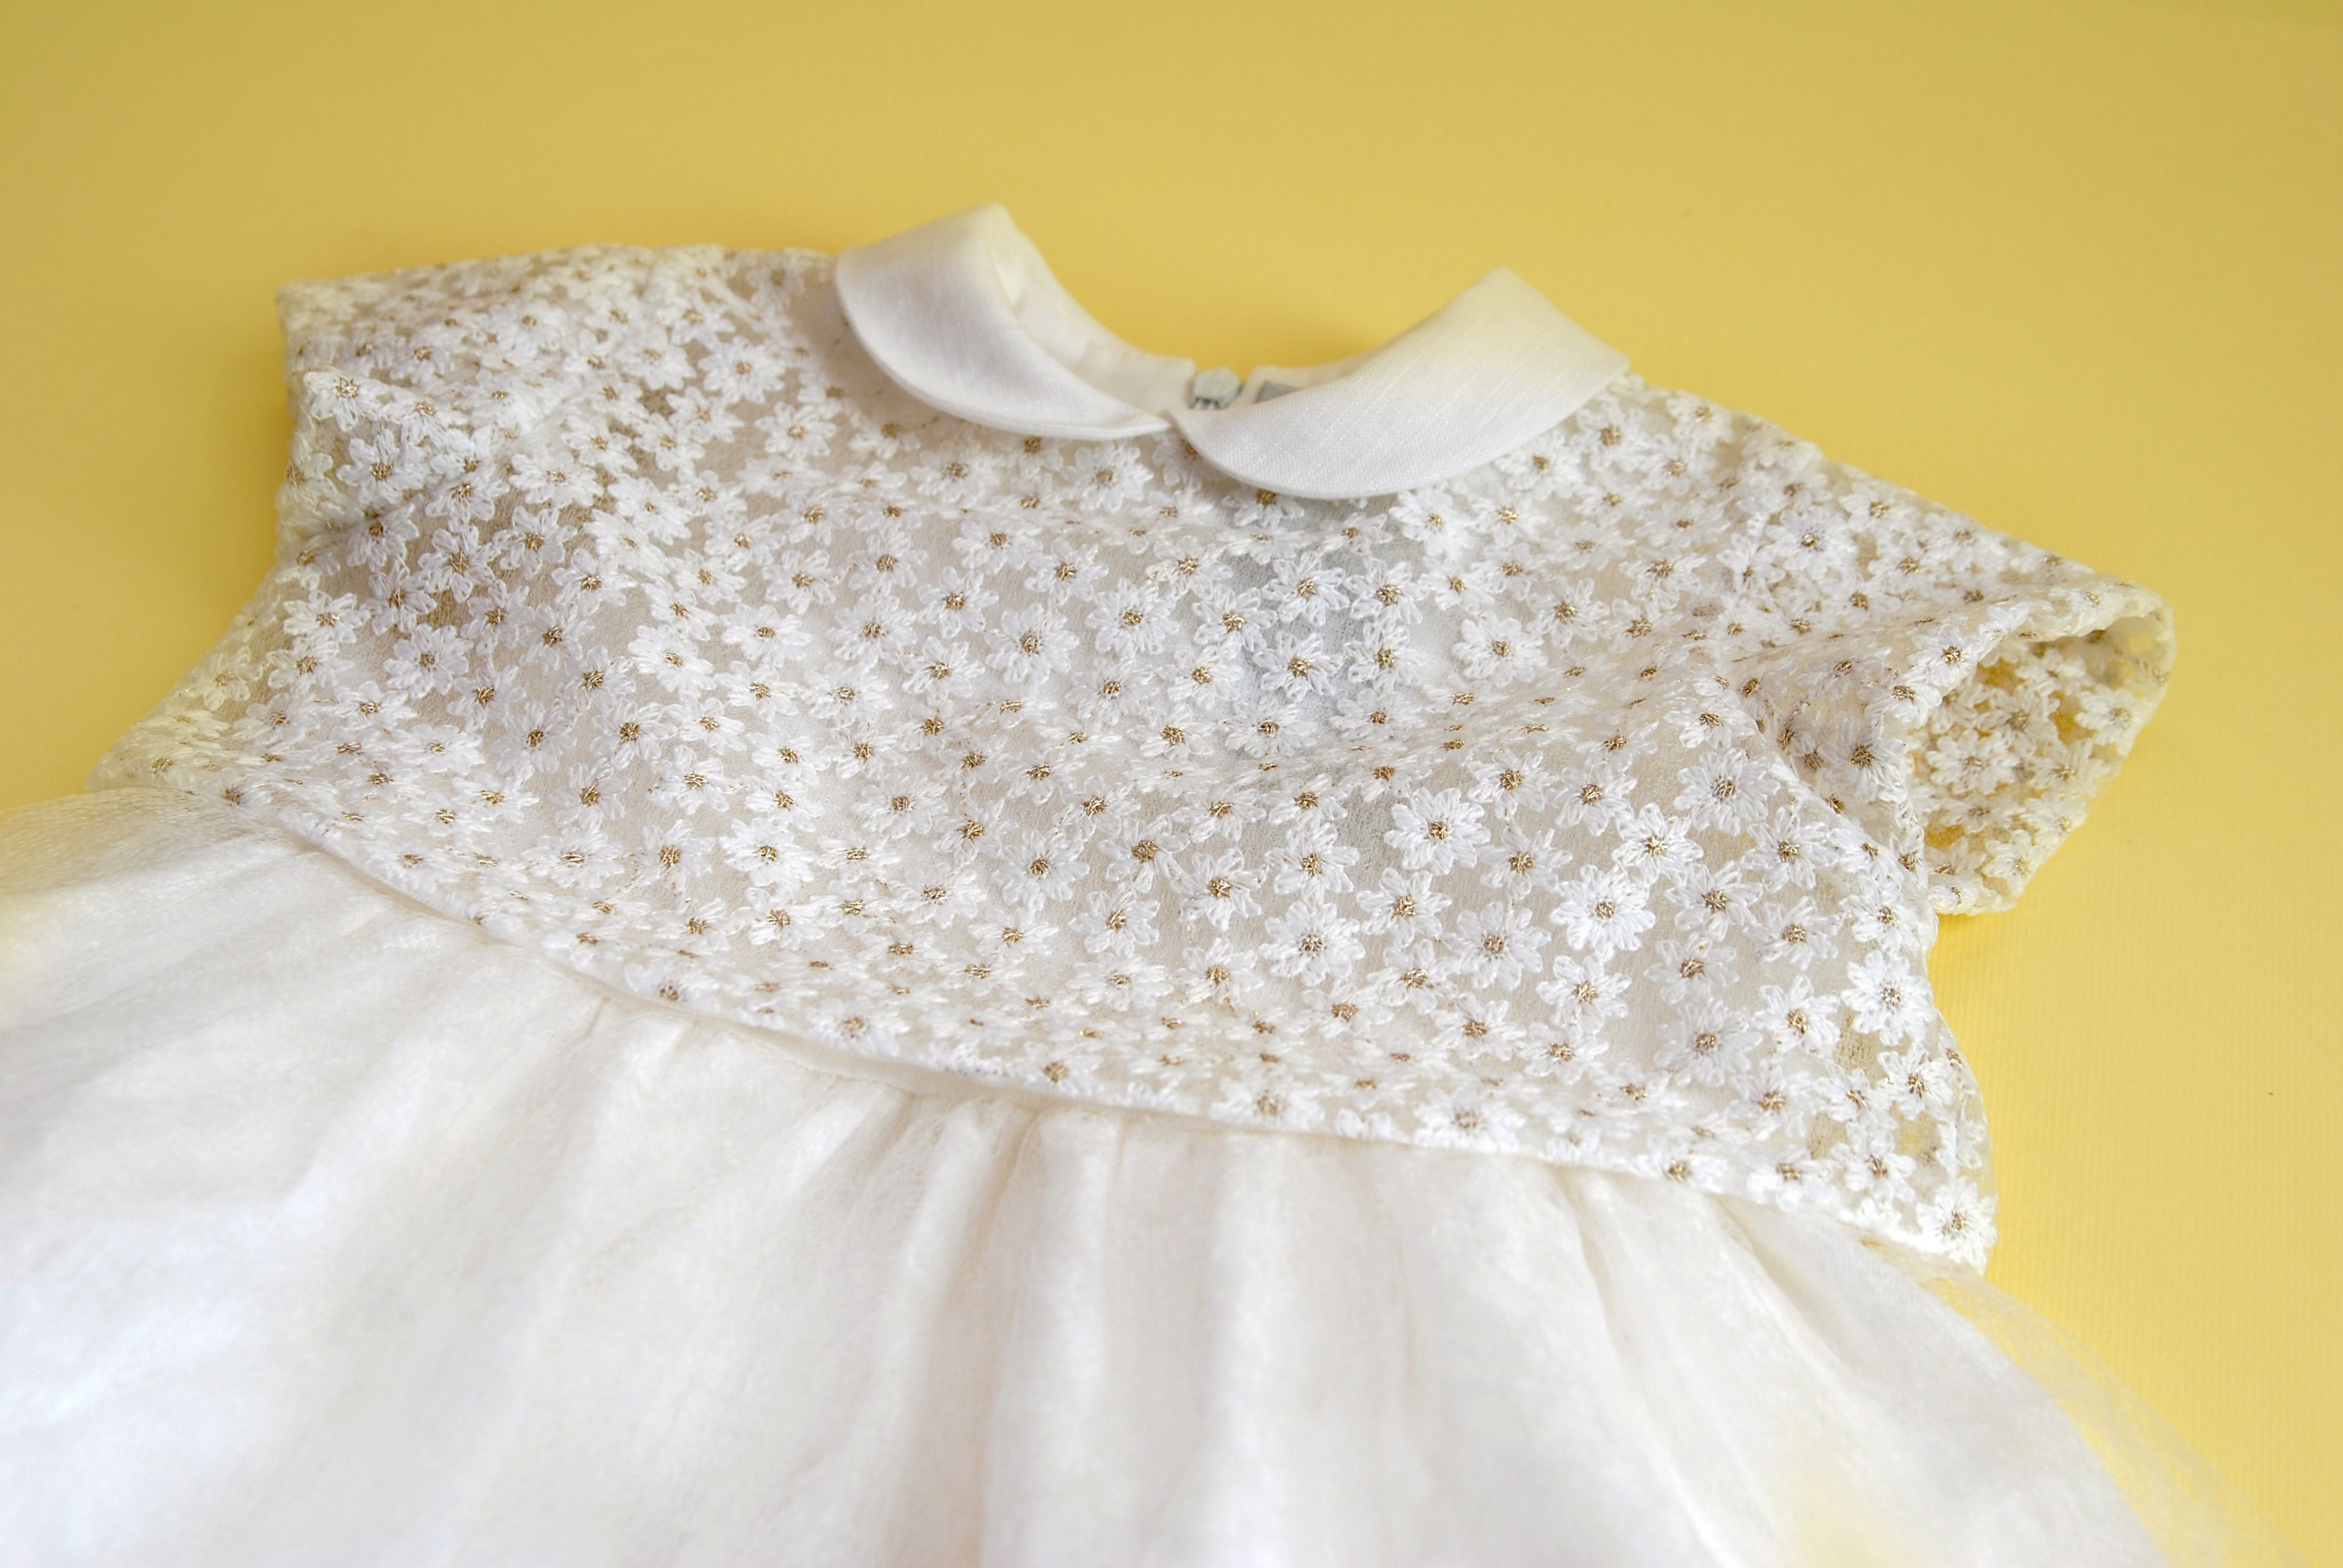 Shine bright like a diamond the dreamy dress for your lil